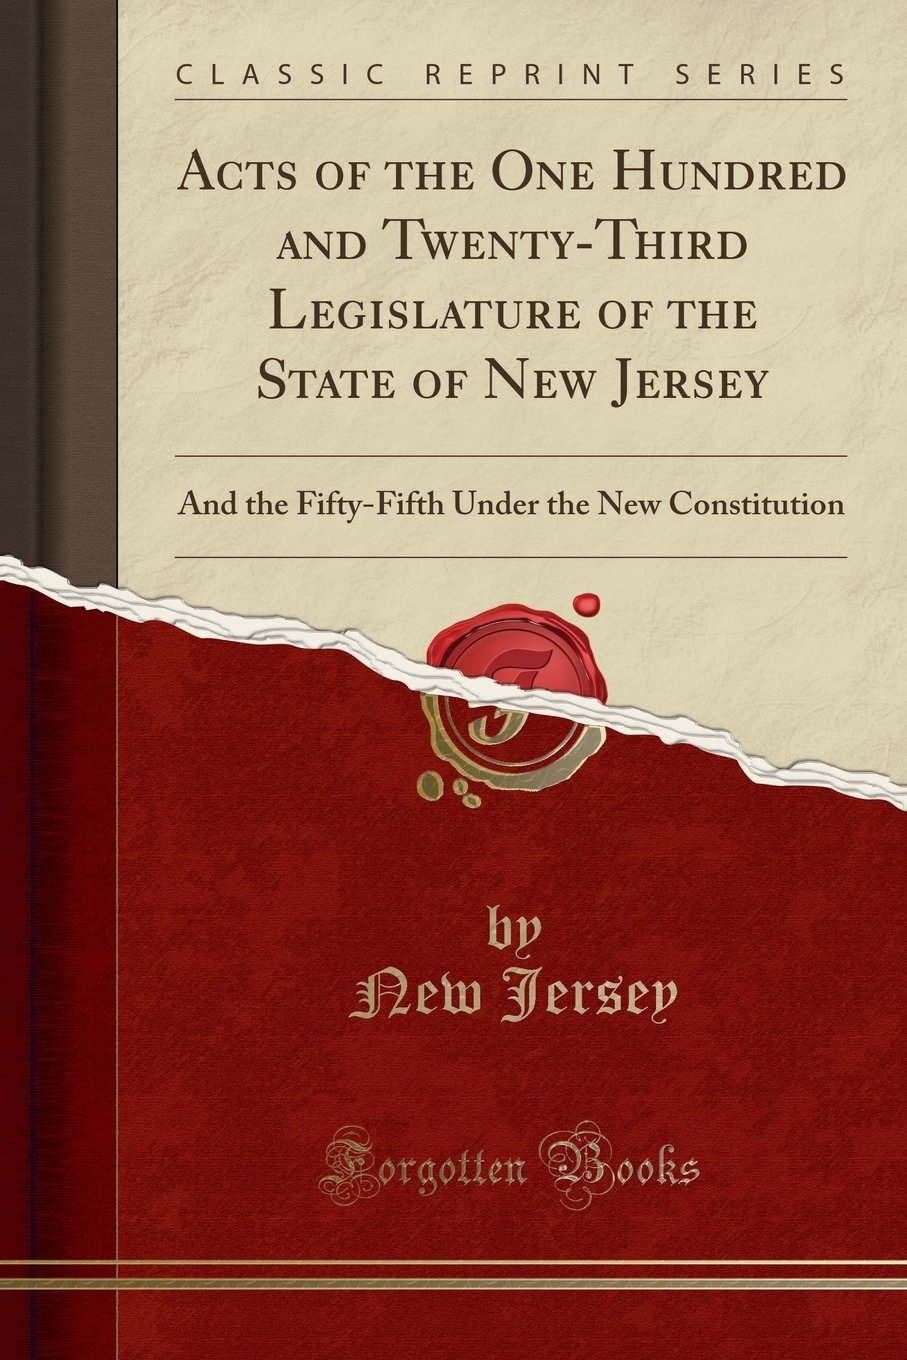 Download Acts of the One Hundred and Twenty-Third Legislature of the State of New Jersey: And the Fifty-Fifth Under the New Constitution (Classic Reprint) PDF